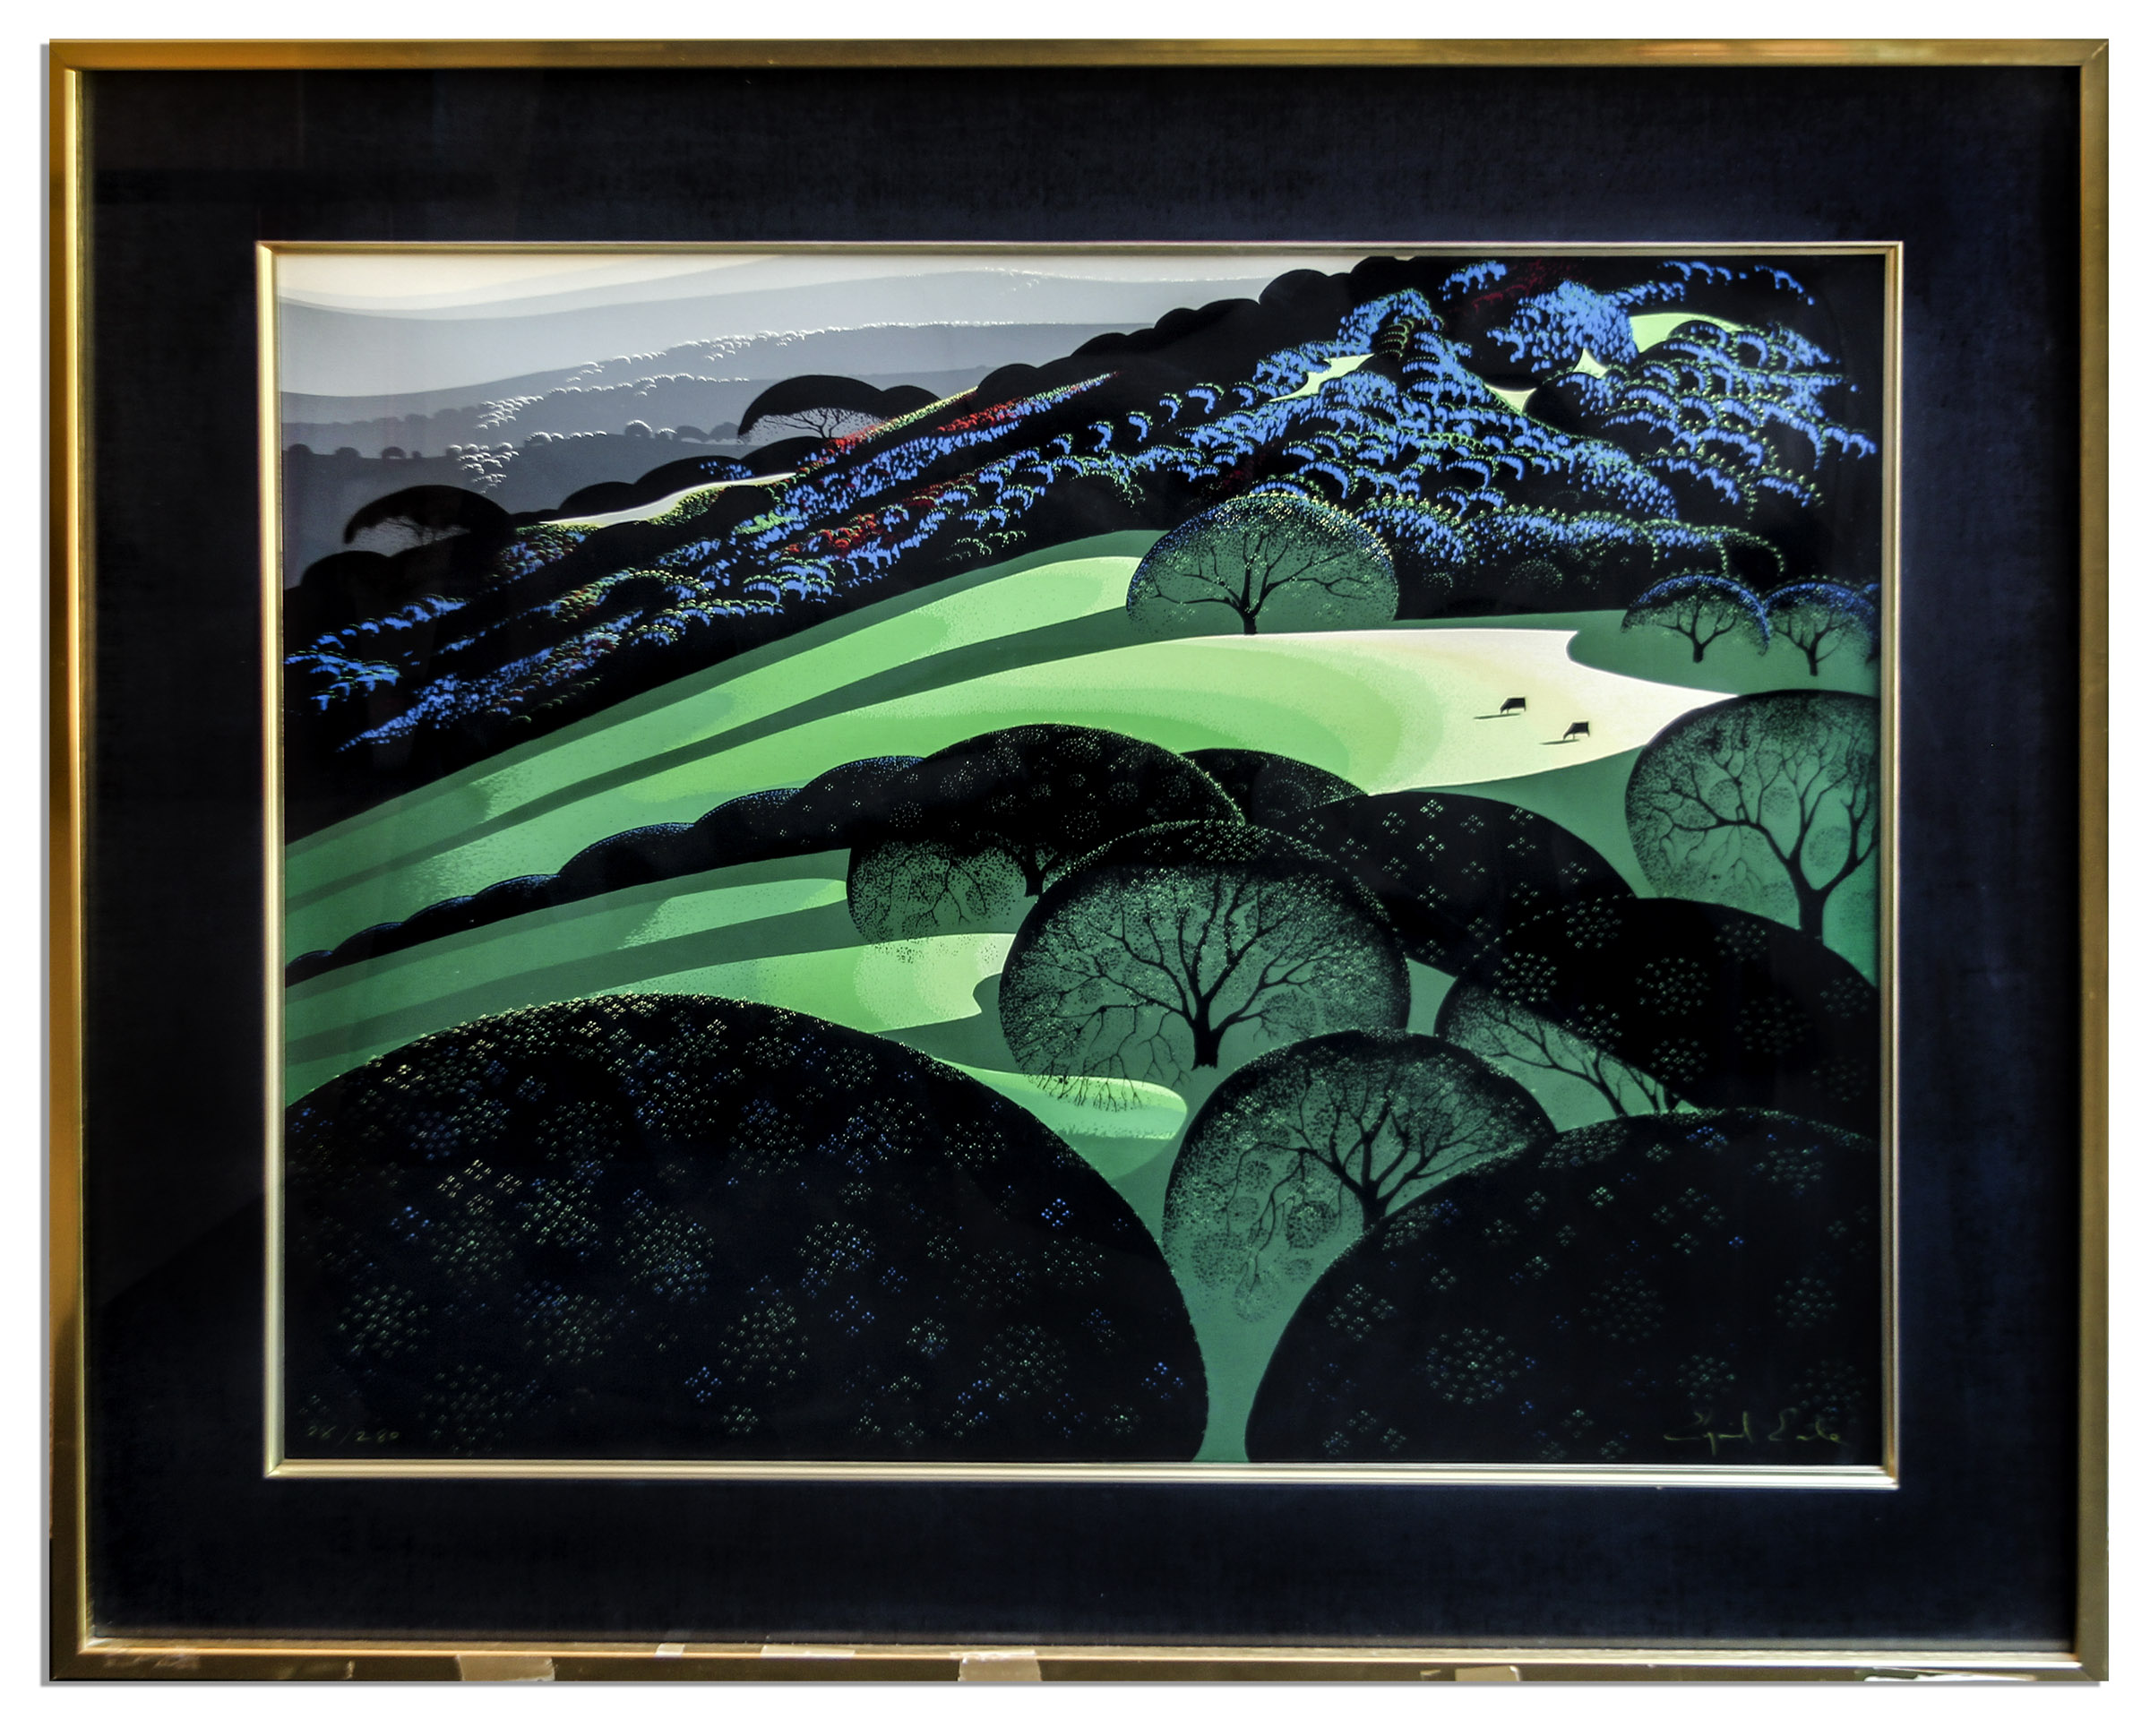 Eyvind Earle Art Ray Bradbury Personally Owned Art -- Limited Edition California Landscape Silkscreen by Eyvind Earle Titled ''Spring''